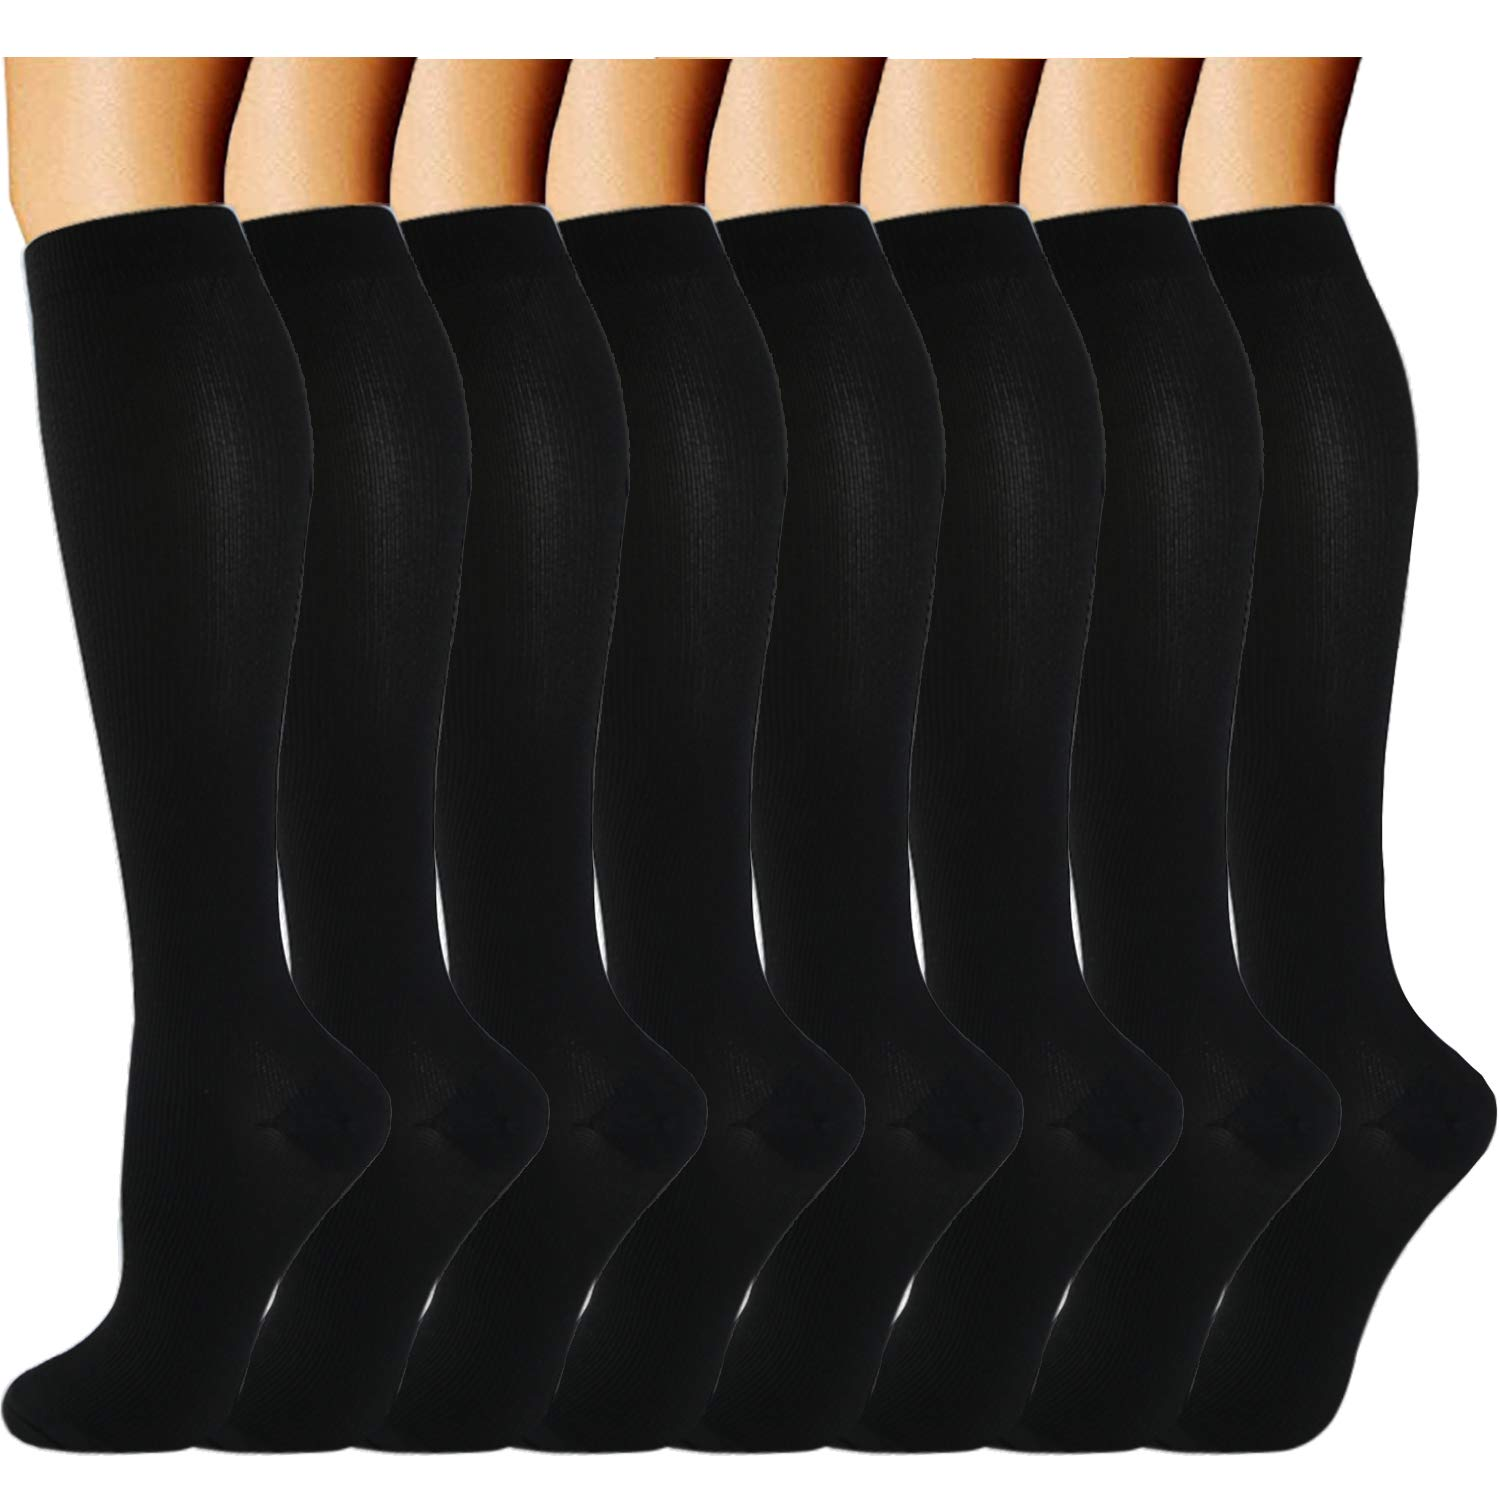 Premium OCR Athletic Compression Socks Women Kids Also for Running Sports Trail Youth Men